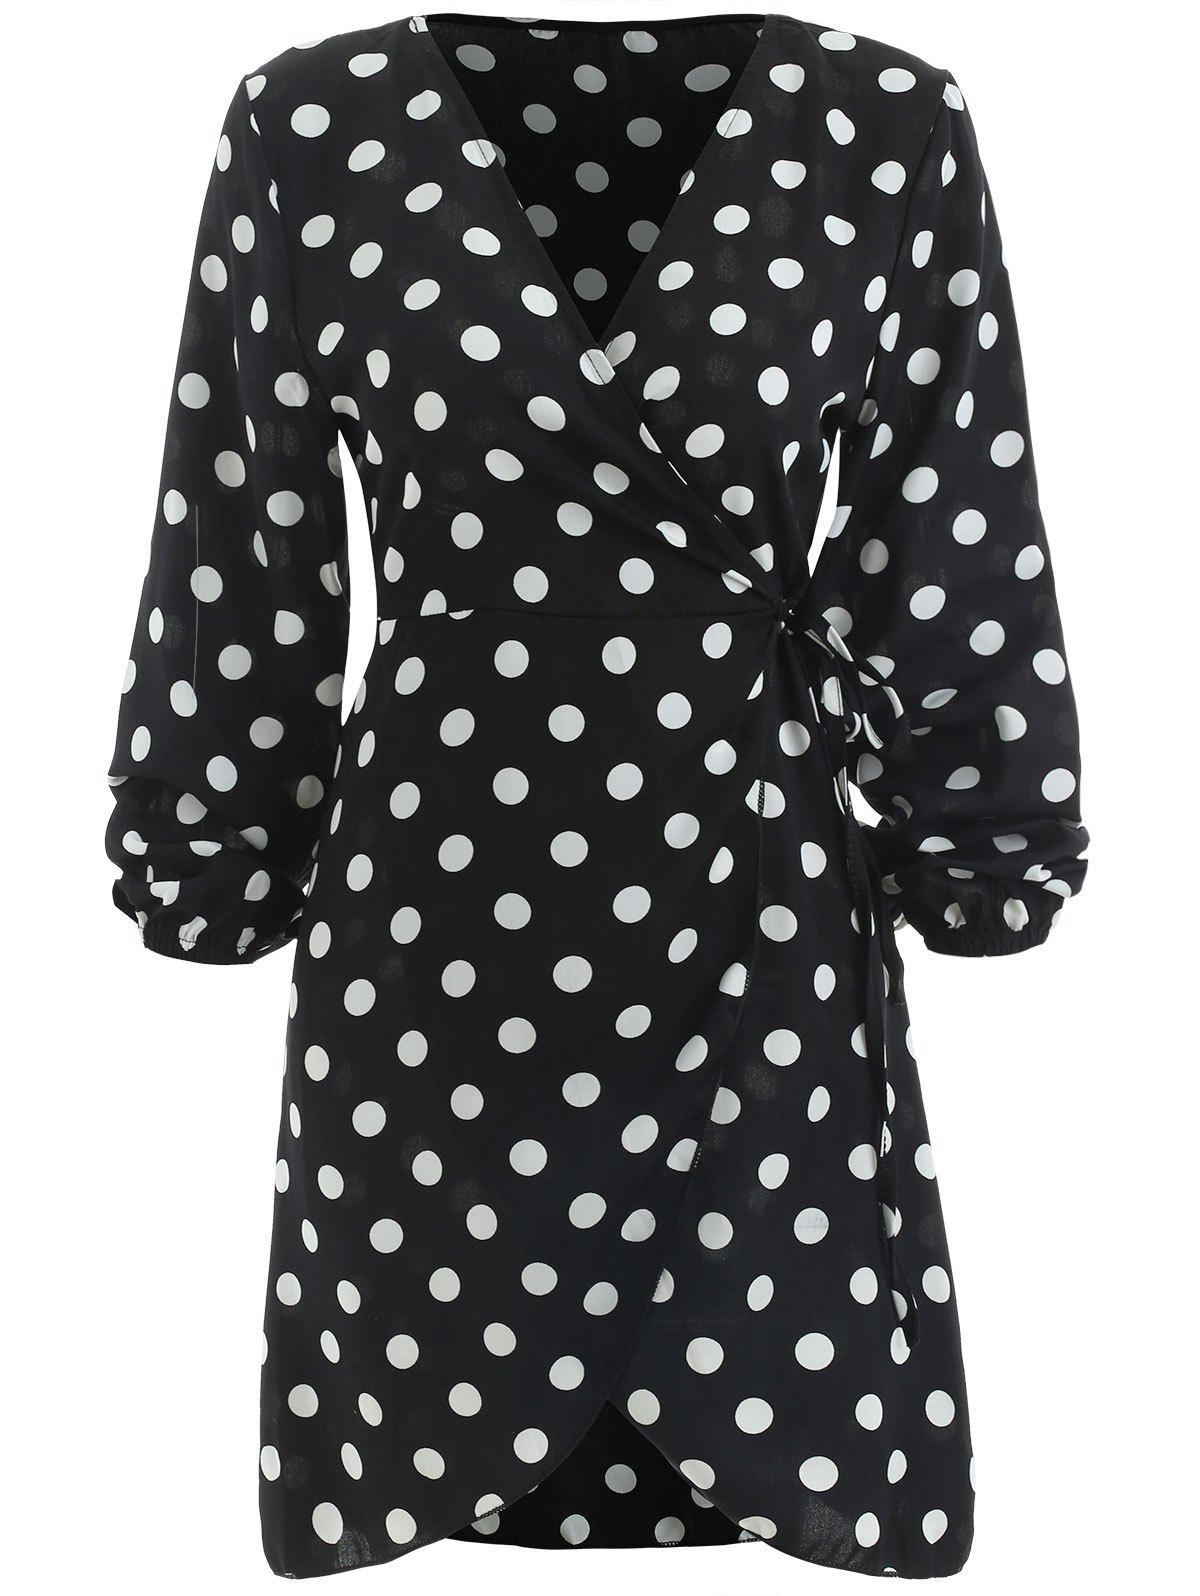 Unique Long Sleeve Polka Dot Wrap Dress